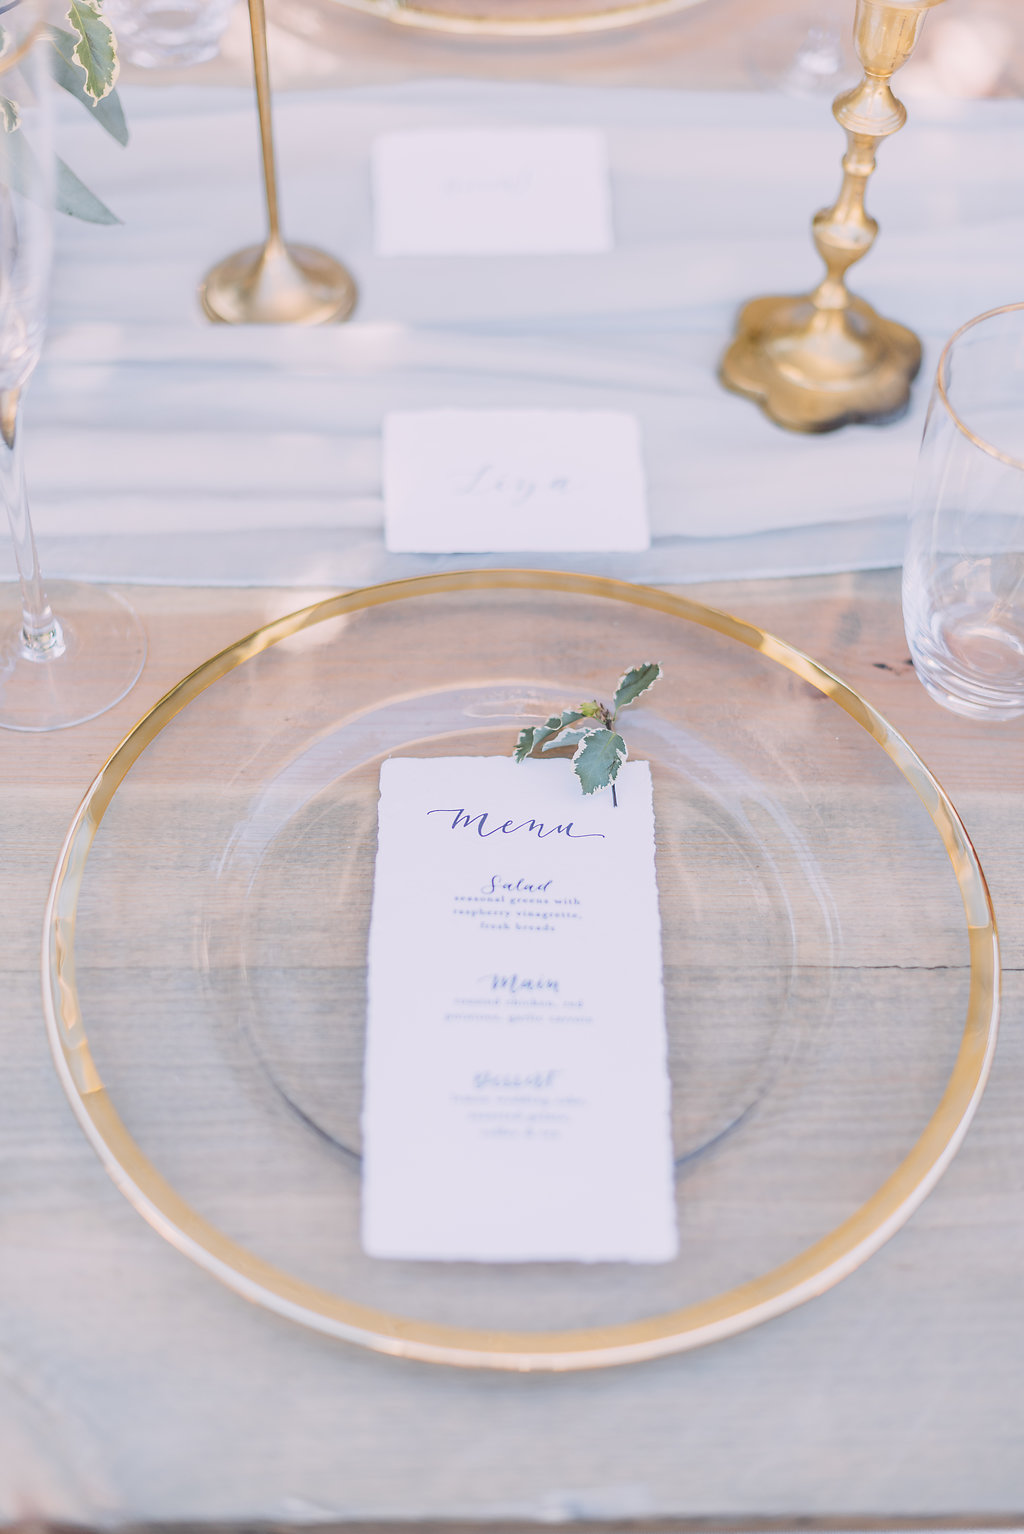 elegant and minimalist gold and transparent tableware for french classic wedding tablescape